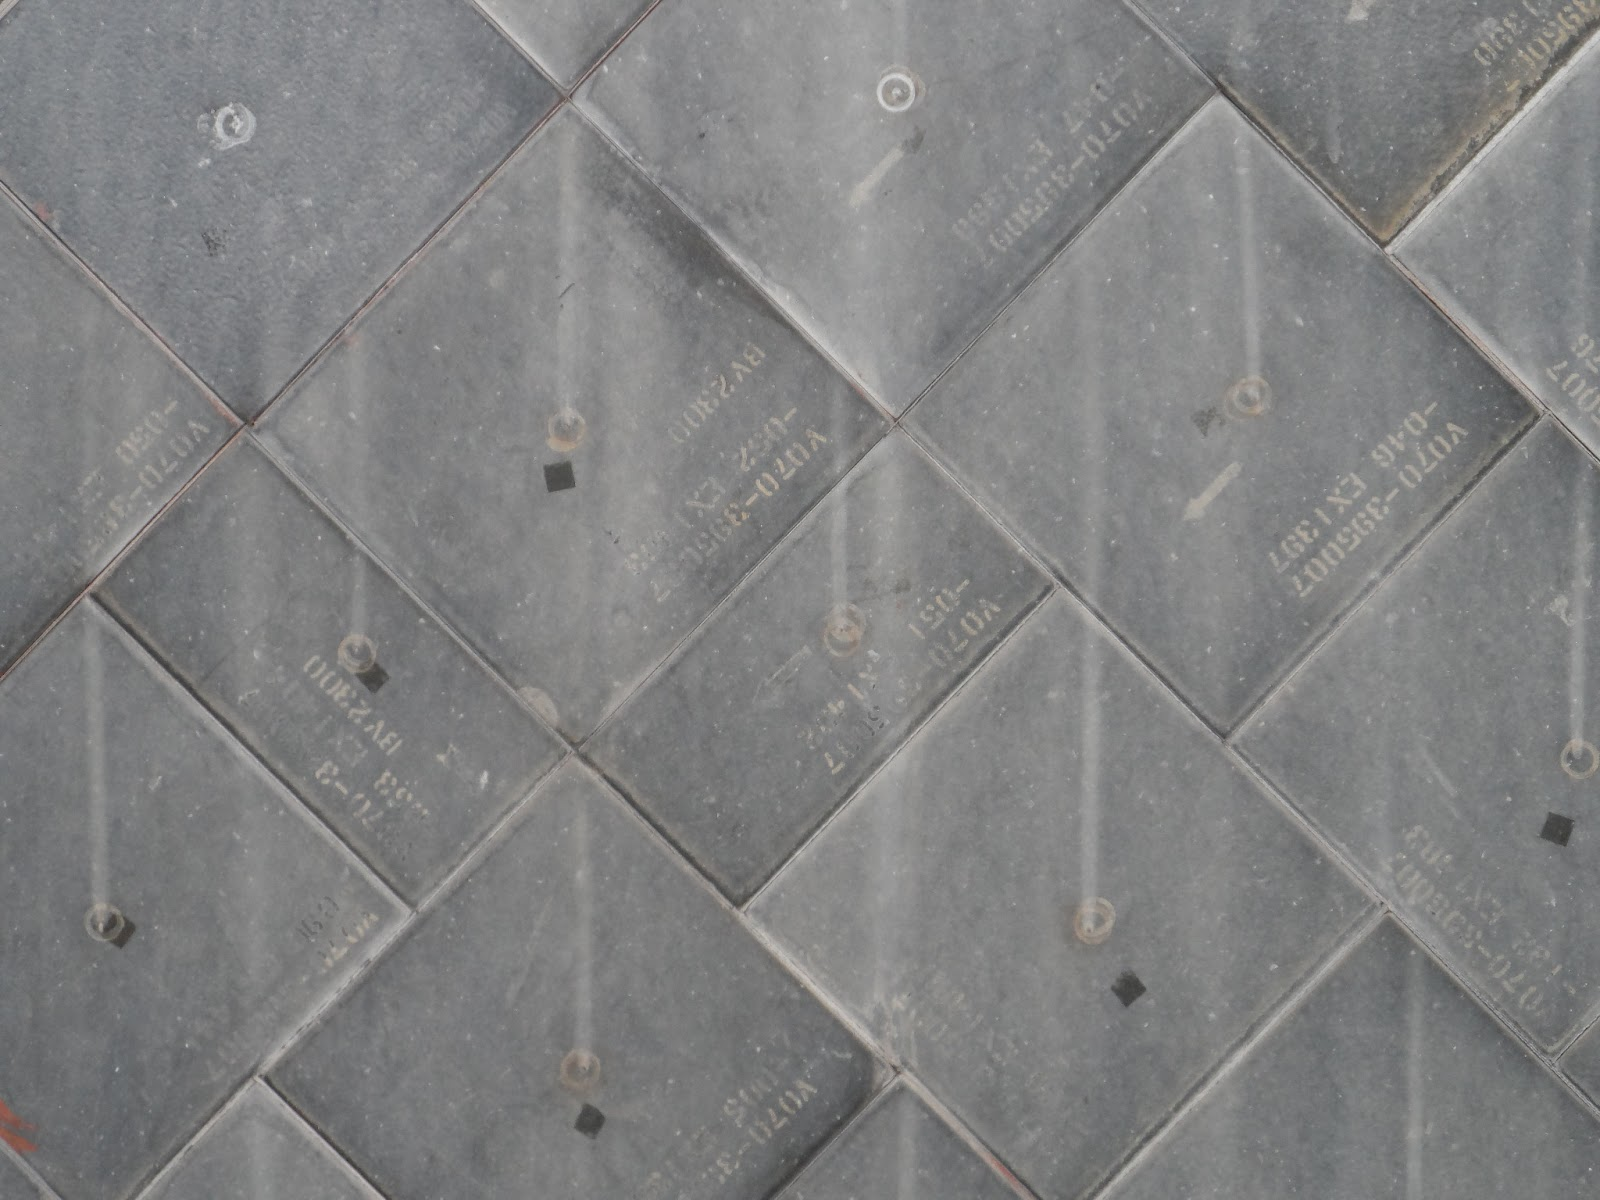 space shuttle heat shield tiles - photo #1